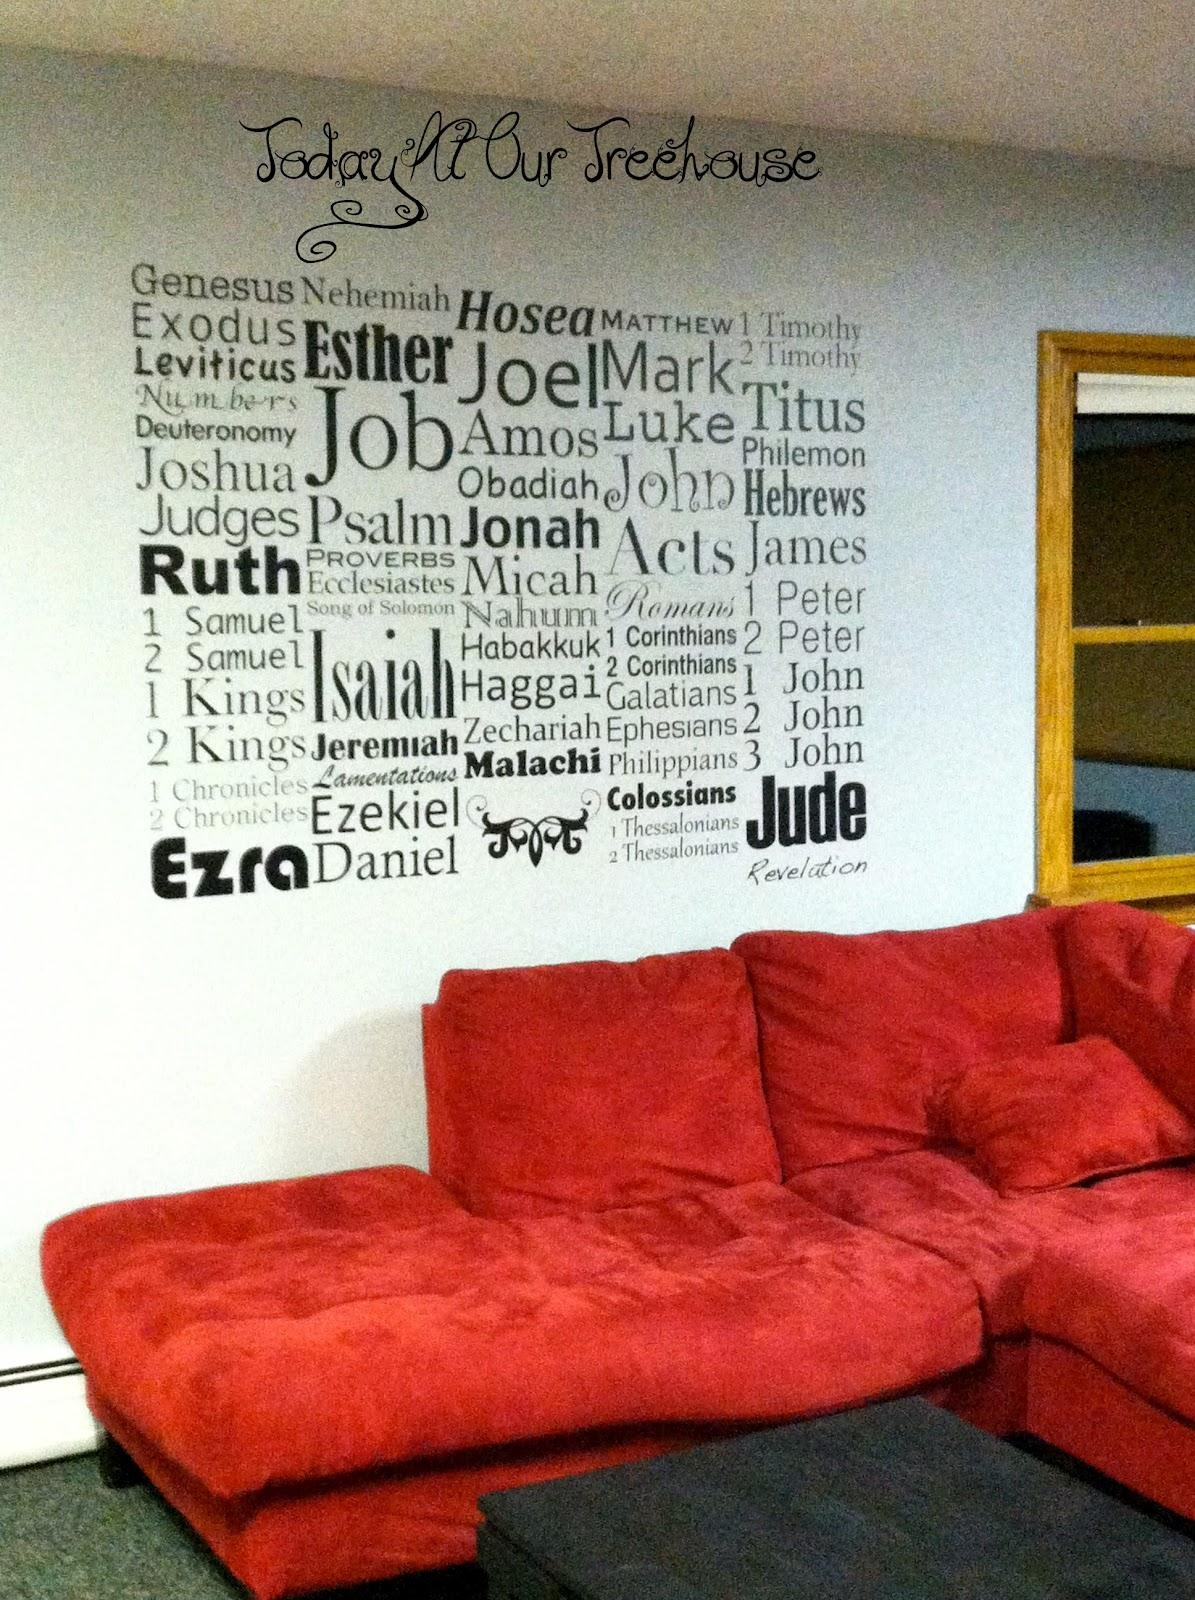 Today At Our Treehouse: Books Of The Bible Wall Art Intended For Biblical Wall Art (Image 15 of 20)